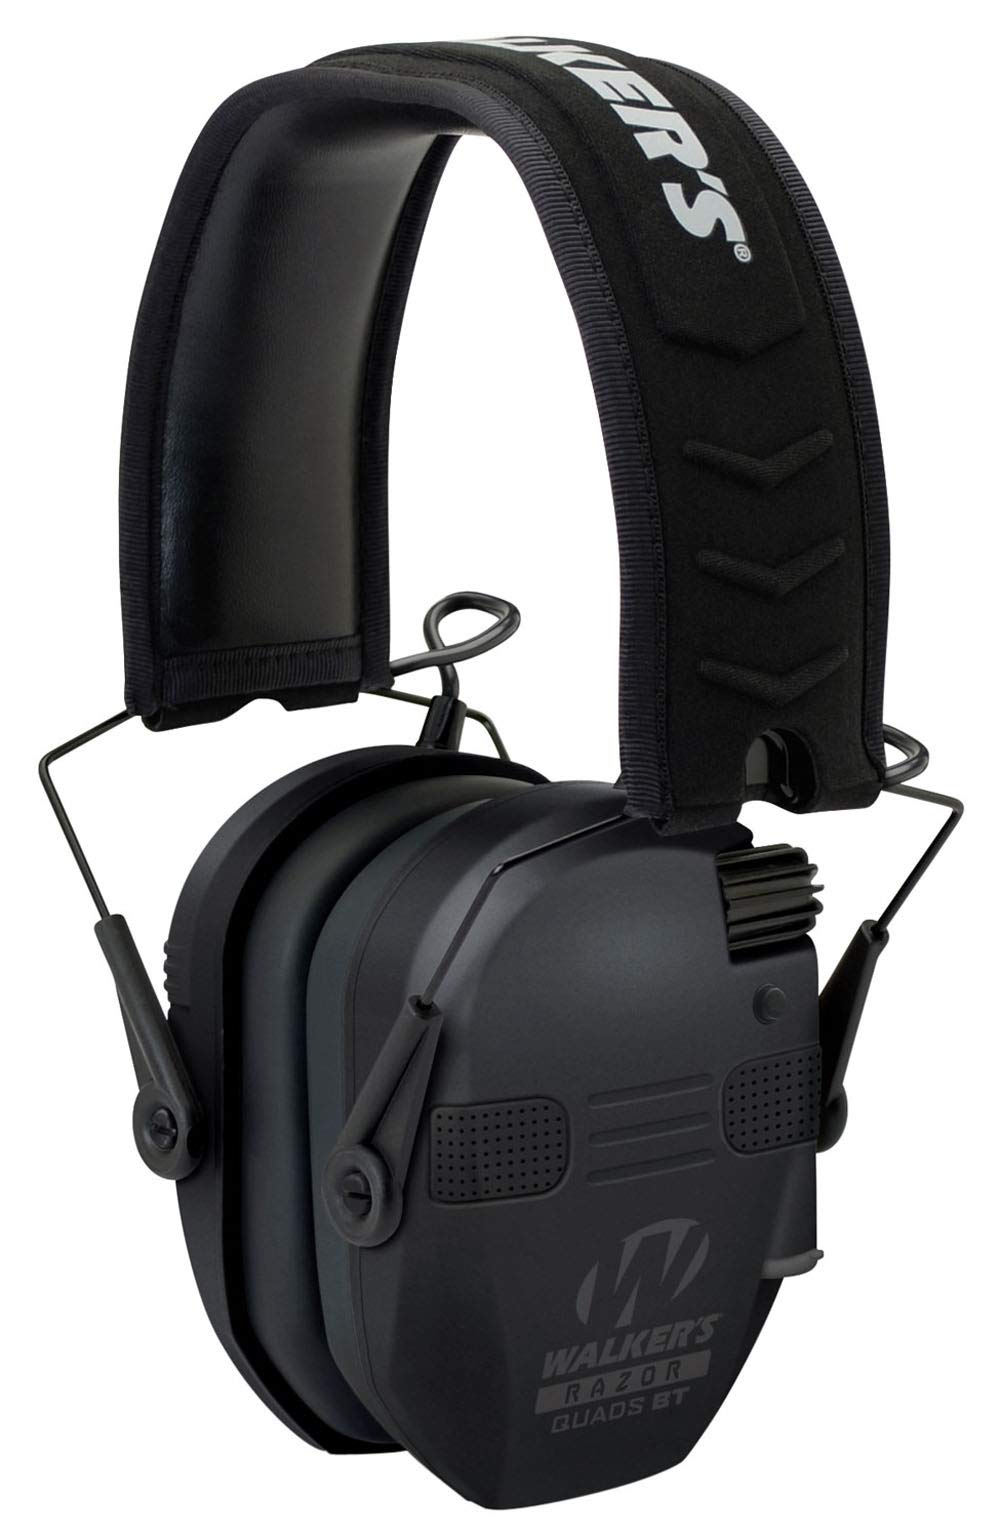 Walkers Razor Slim Quad with Bluetooth Electronic Earmuff 23 dB Black by Walkers